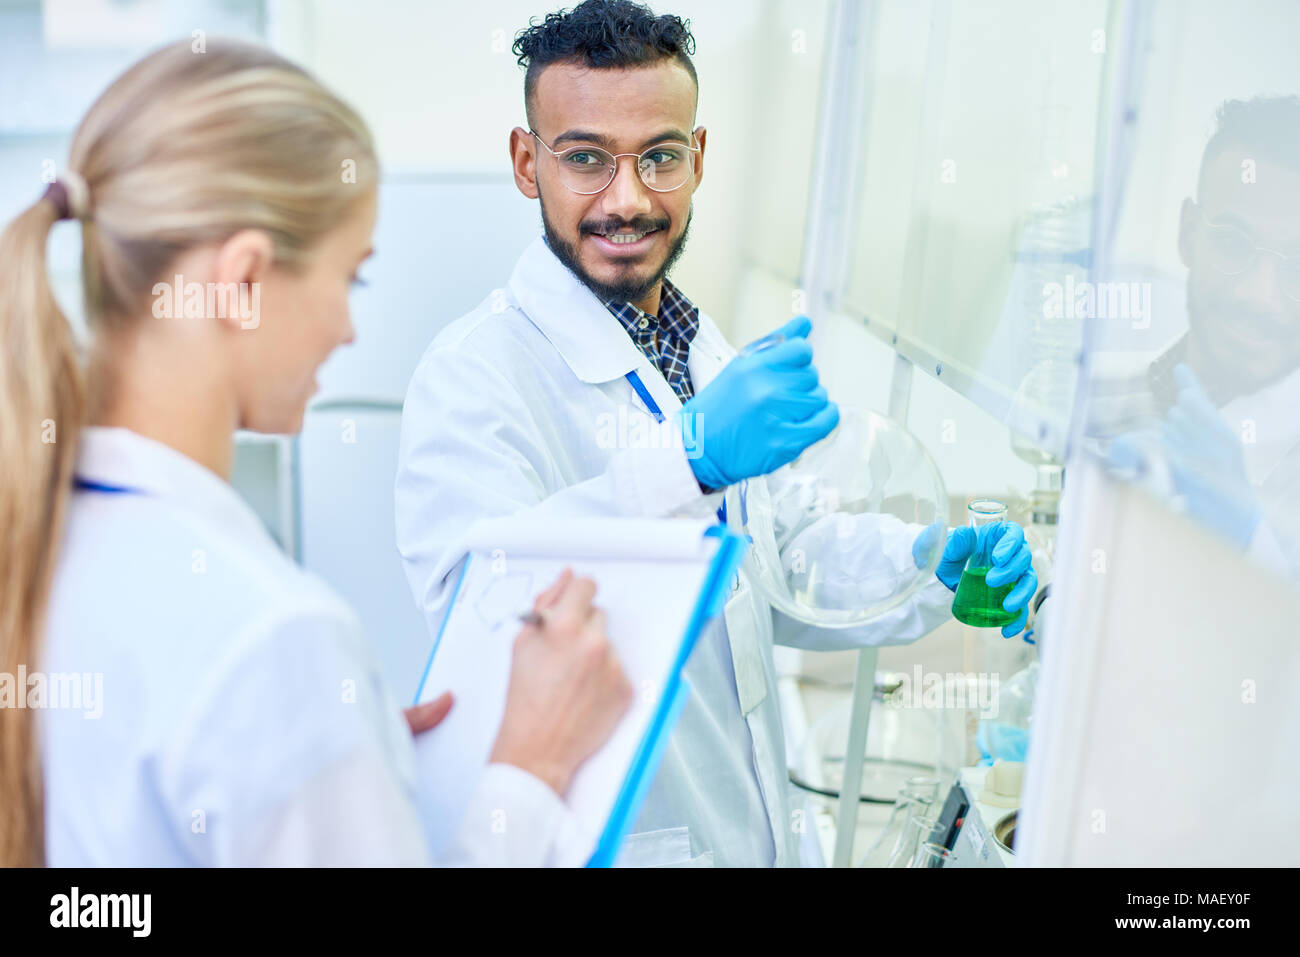 Experienced researcher ready for new discovery - Stock Image